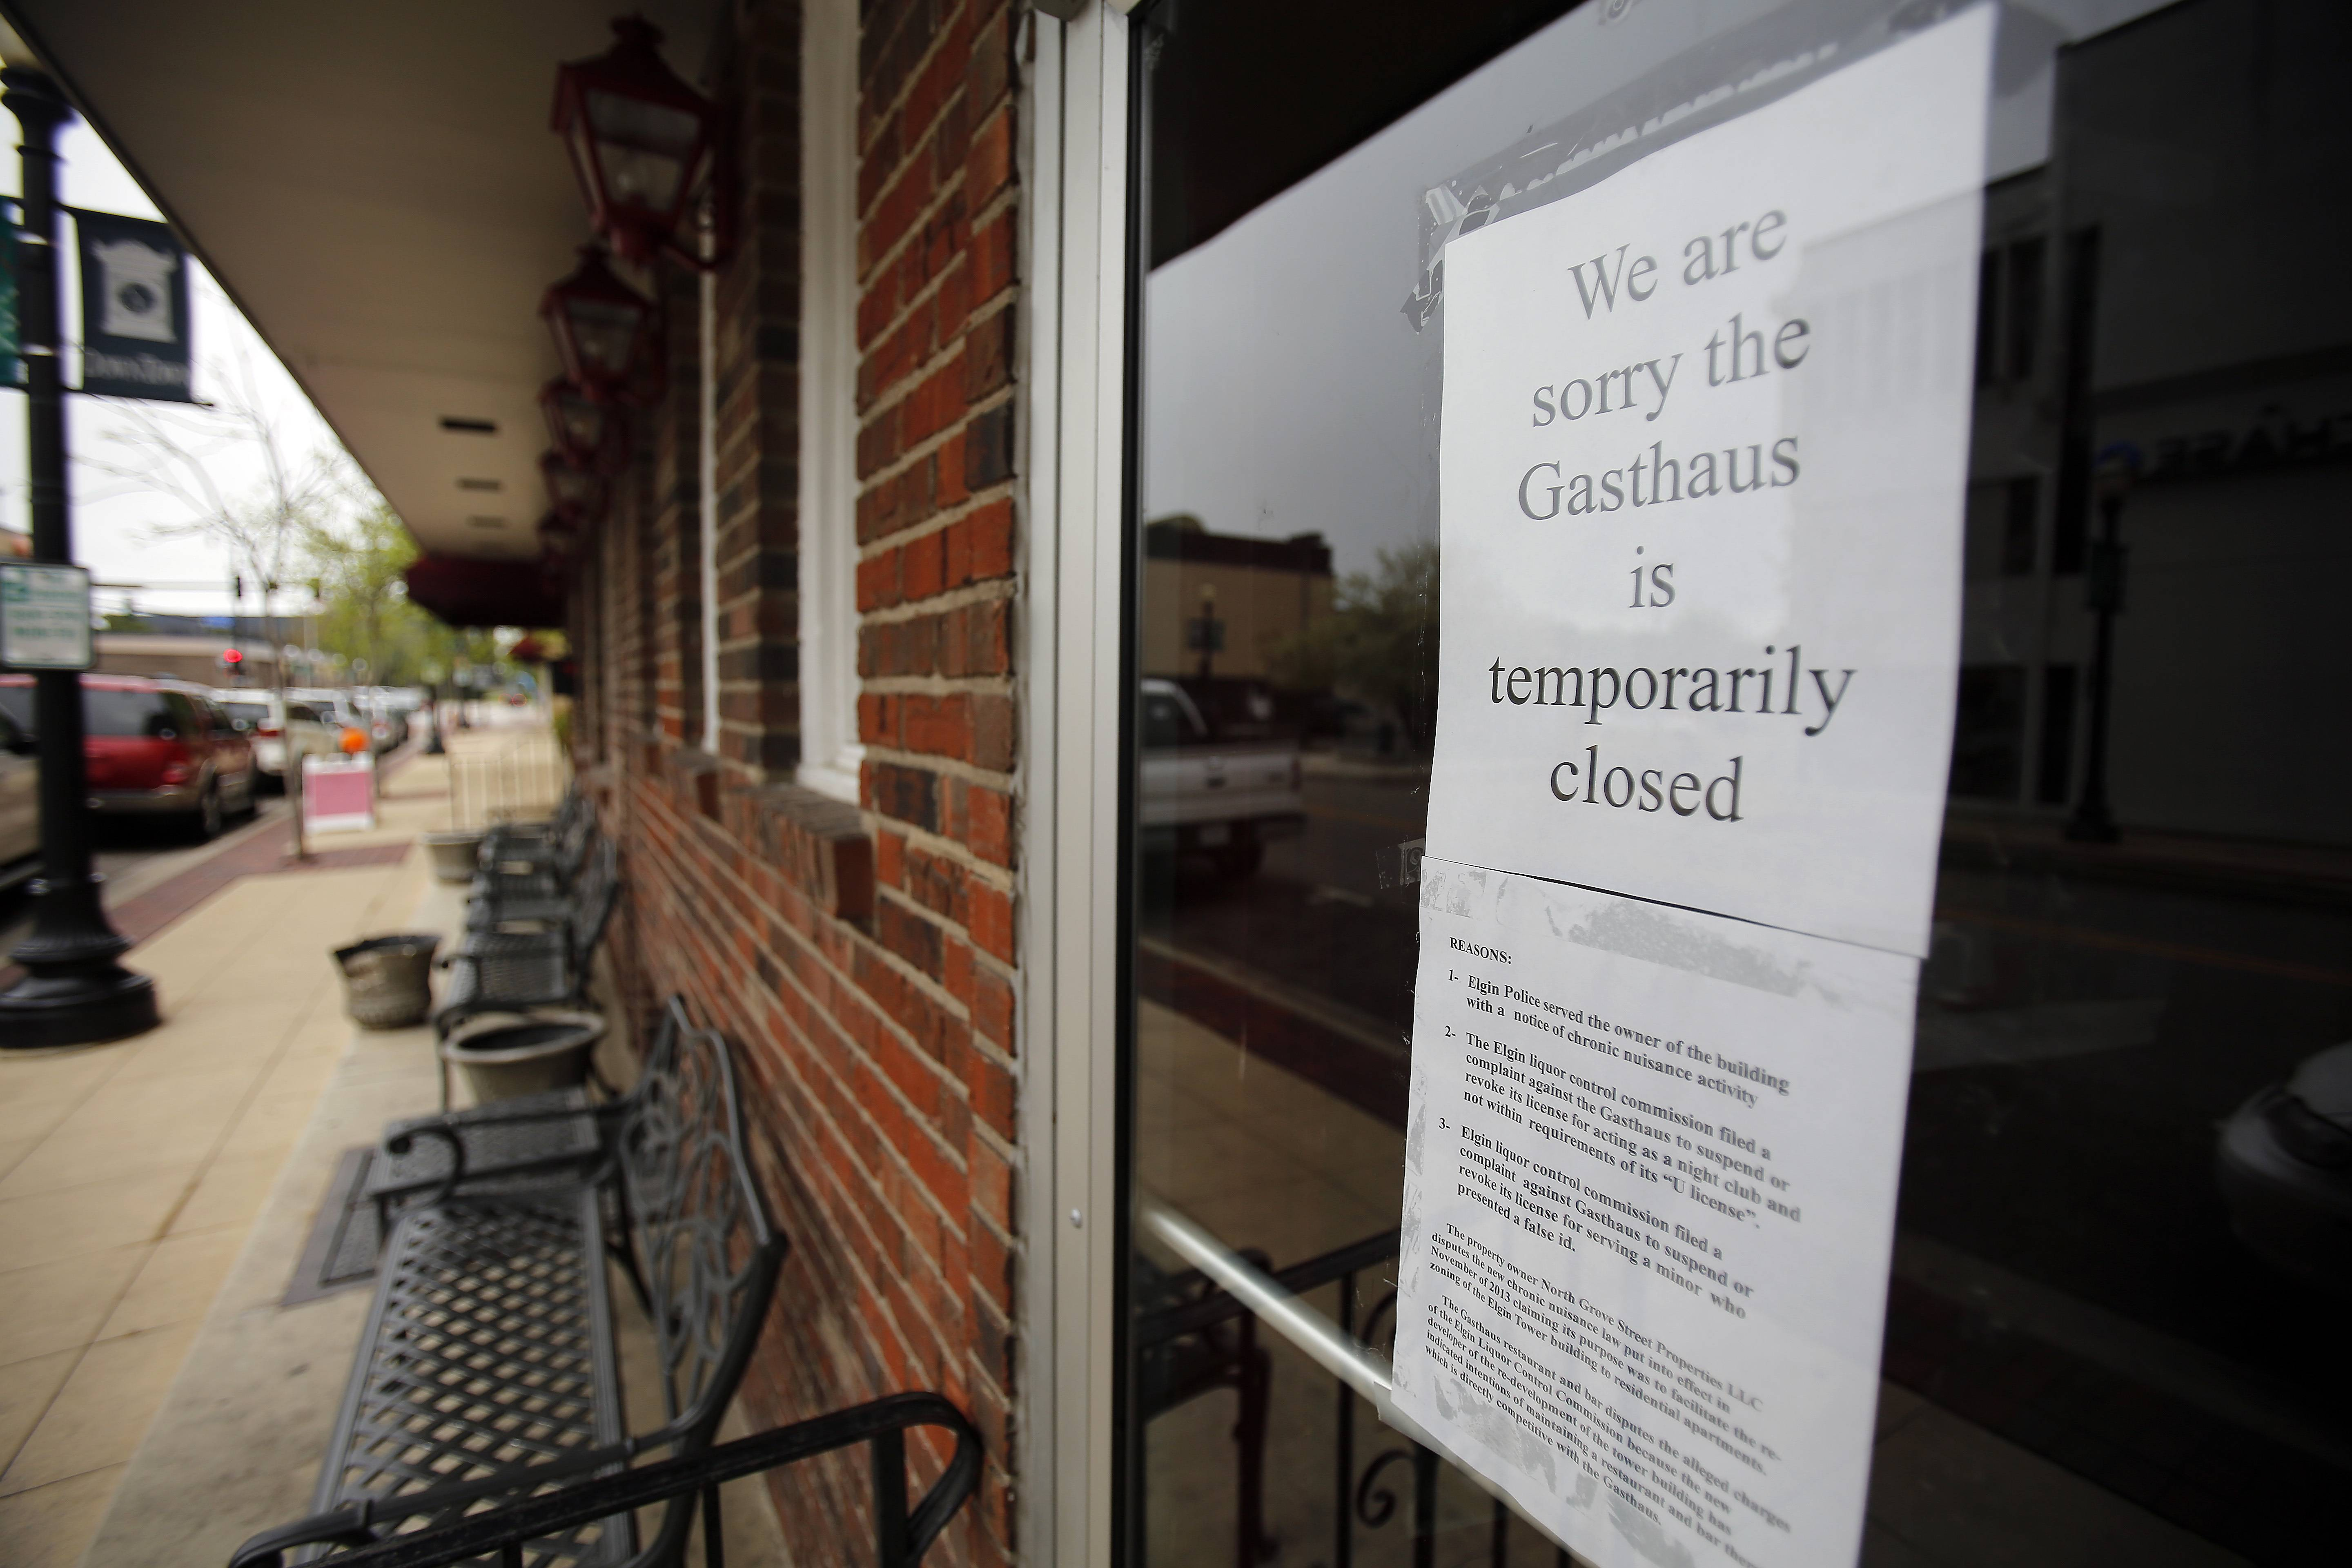 Gasthaus Zur Linde owner Marco Muscarello said he temporarily closed the bar after receiving on May 5 a notice of chronic nuisance activity from the city of Elgin.